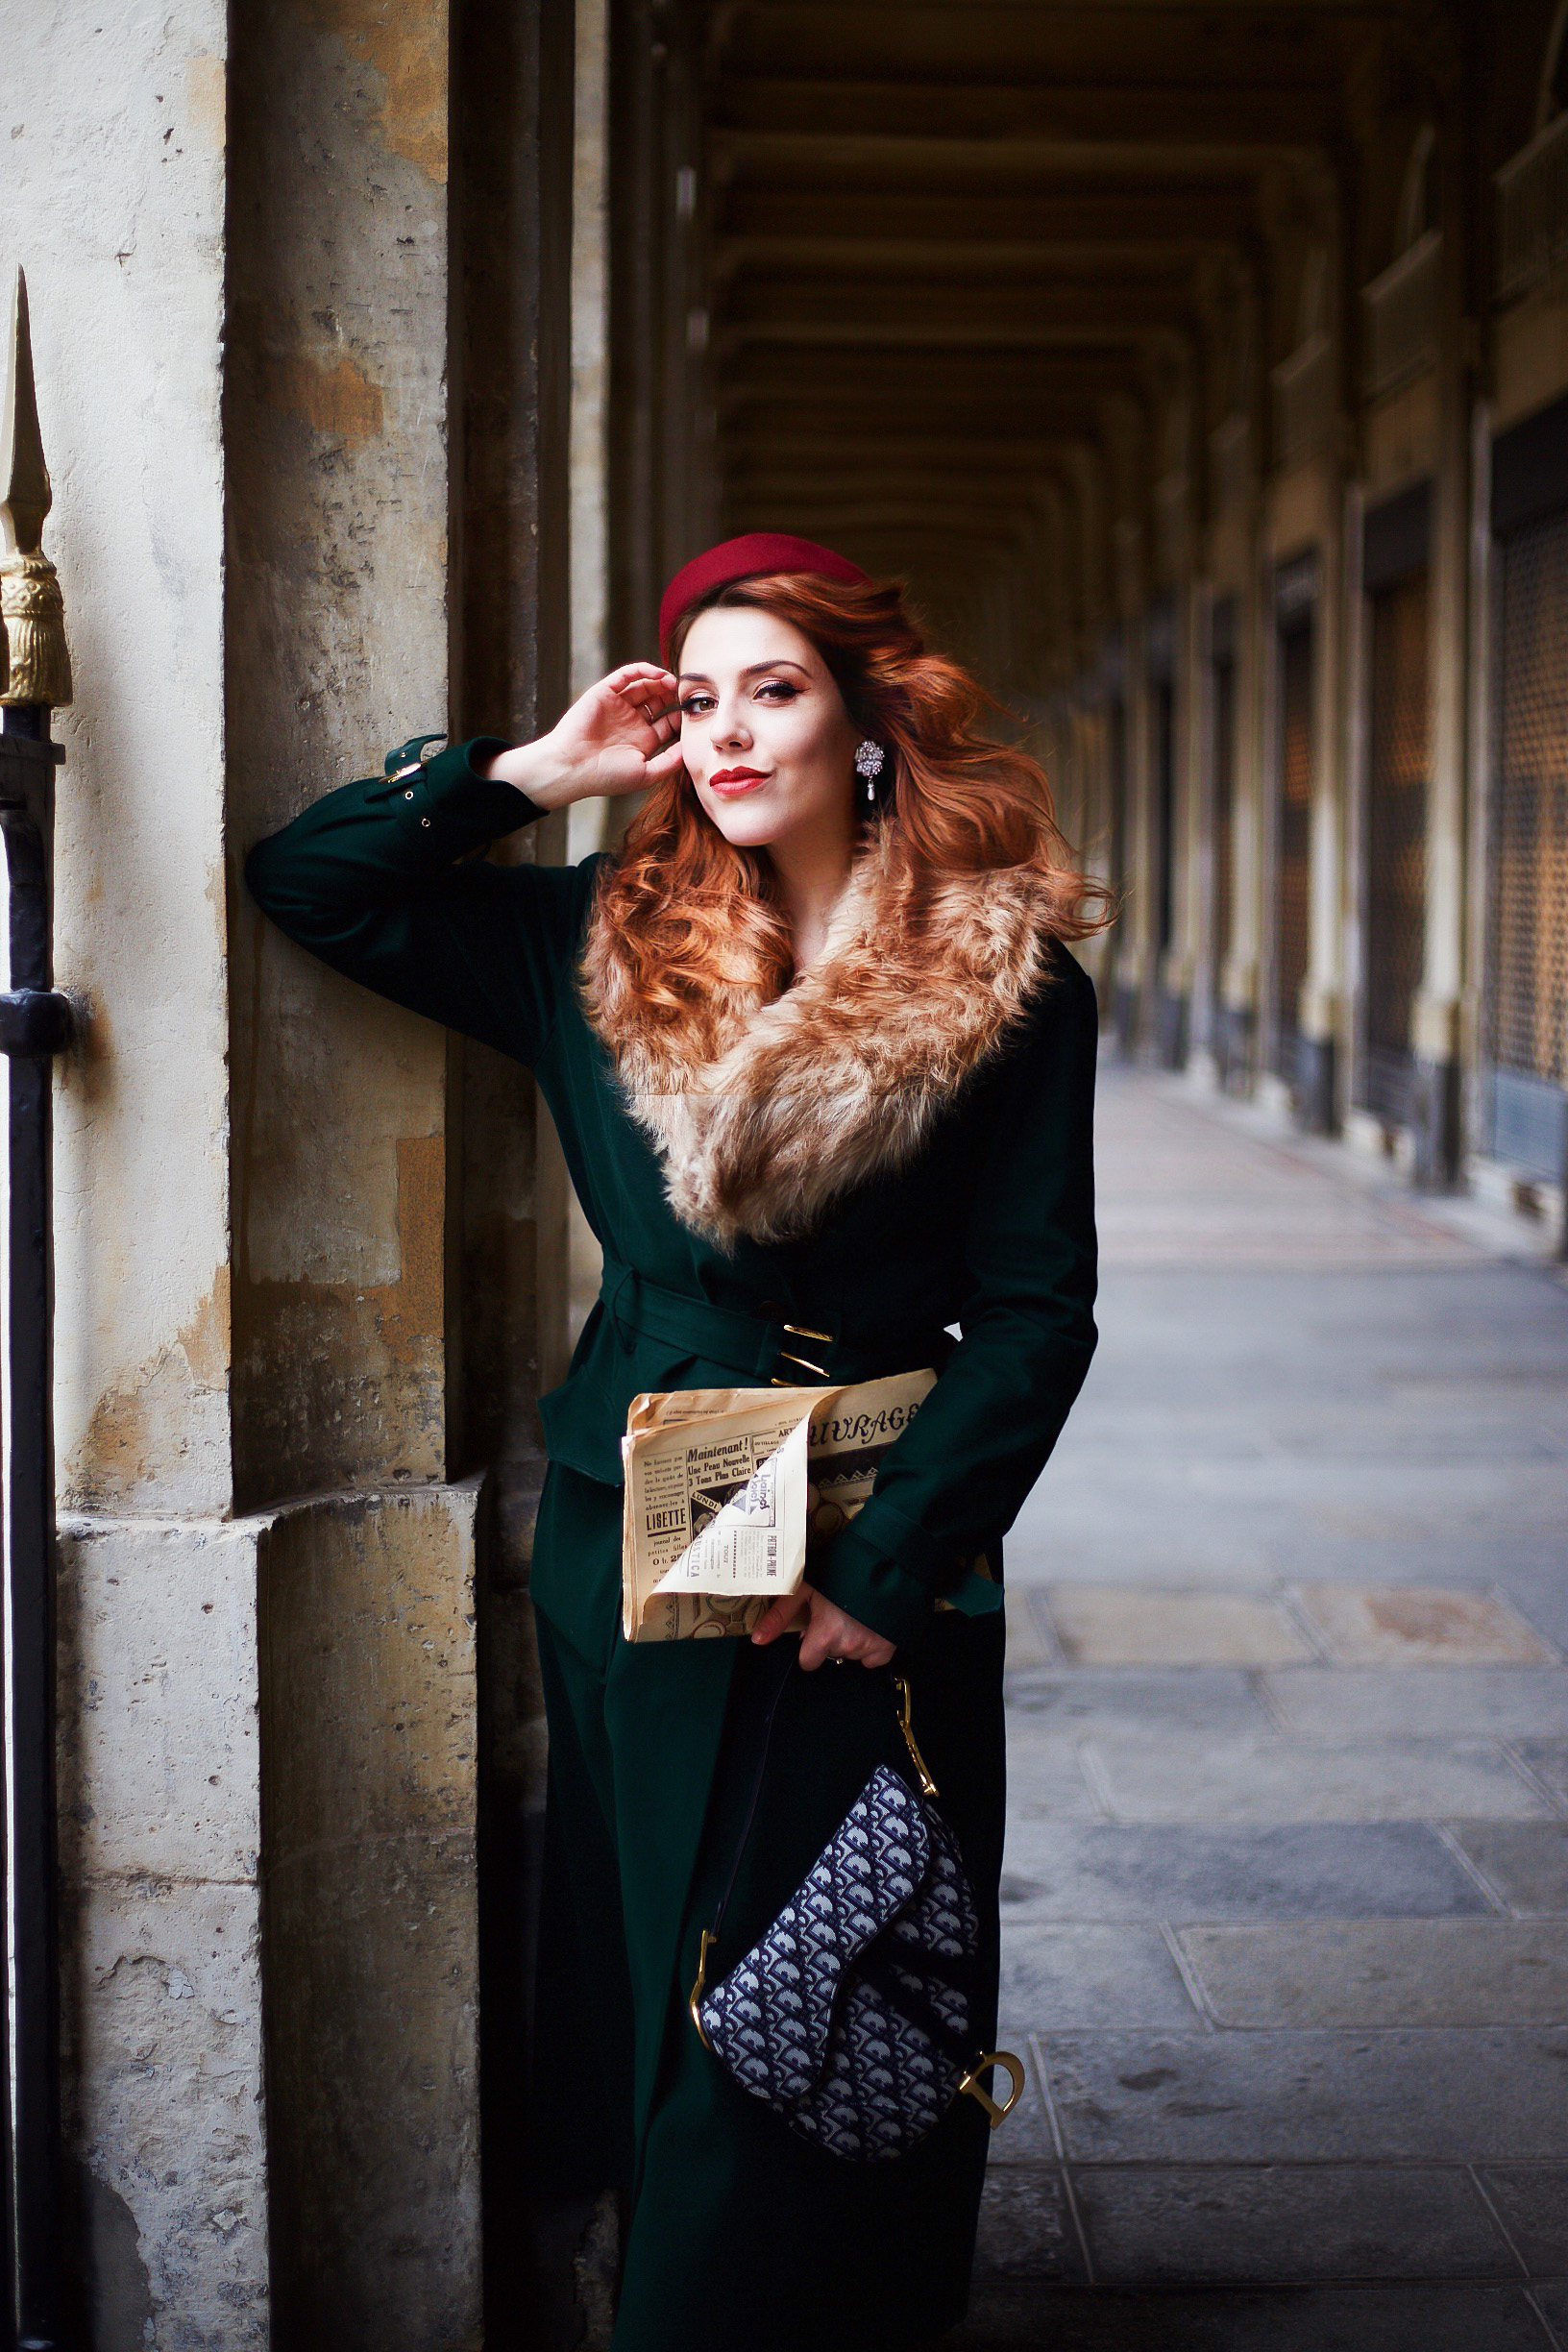 manteau rétro vintage Yvette Libby N'Guyen pin-up fashion blog charliesugartown